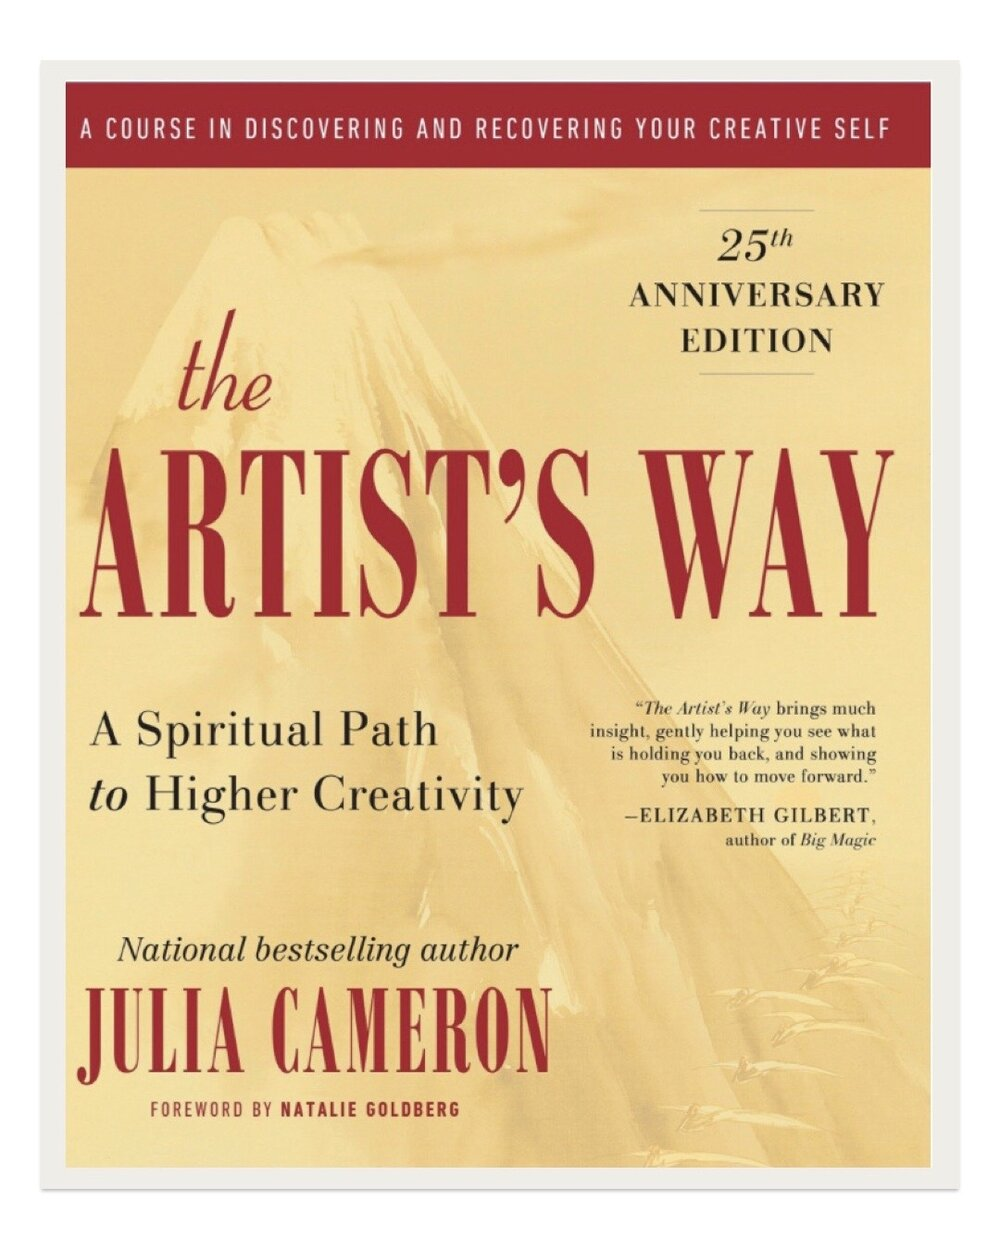 A self help book of sorts, this classic work discusses tuning into one's creativity to gain confidence and purpose.